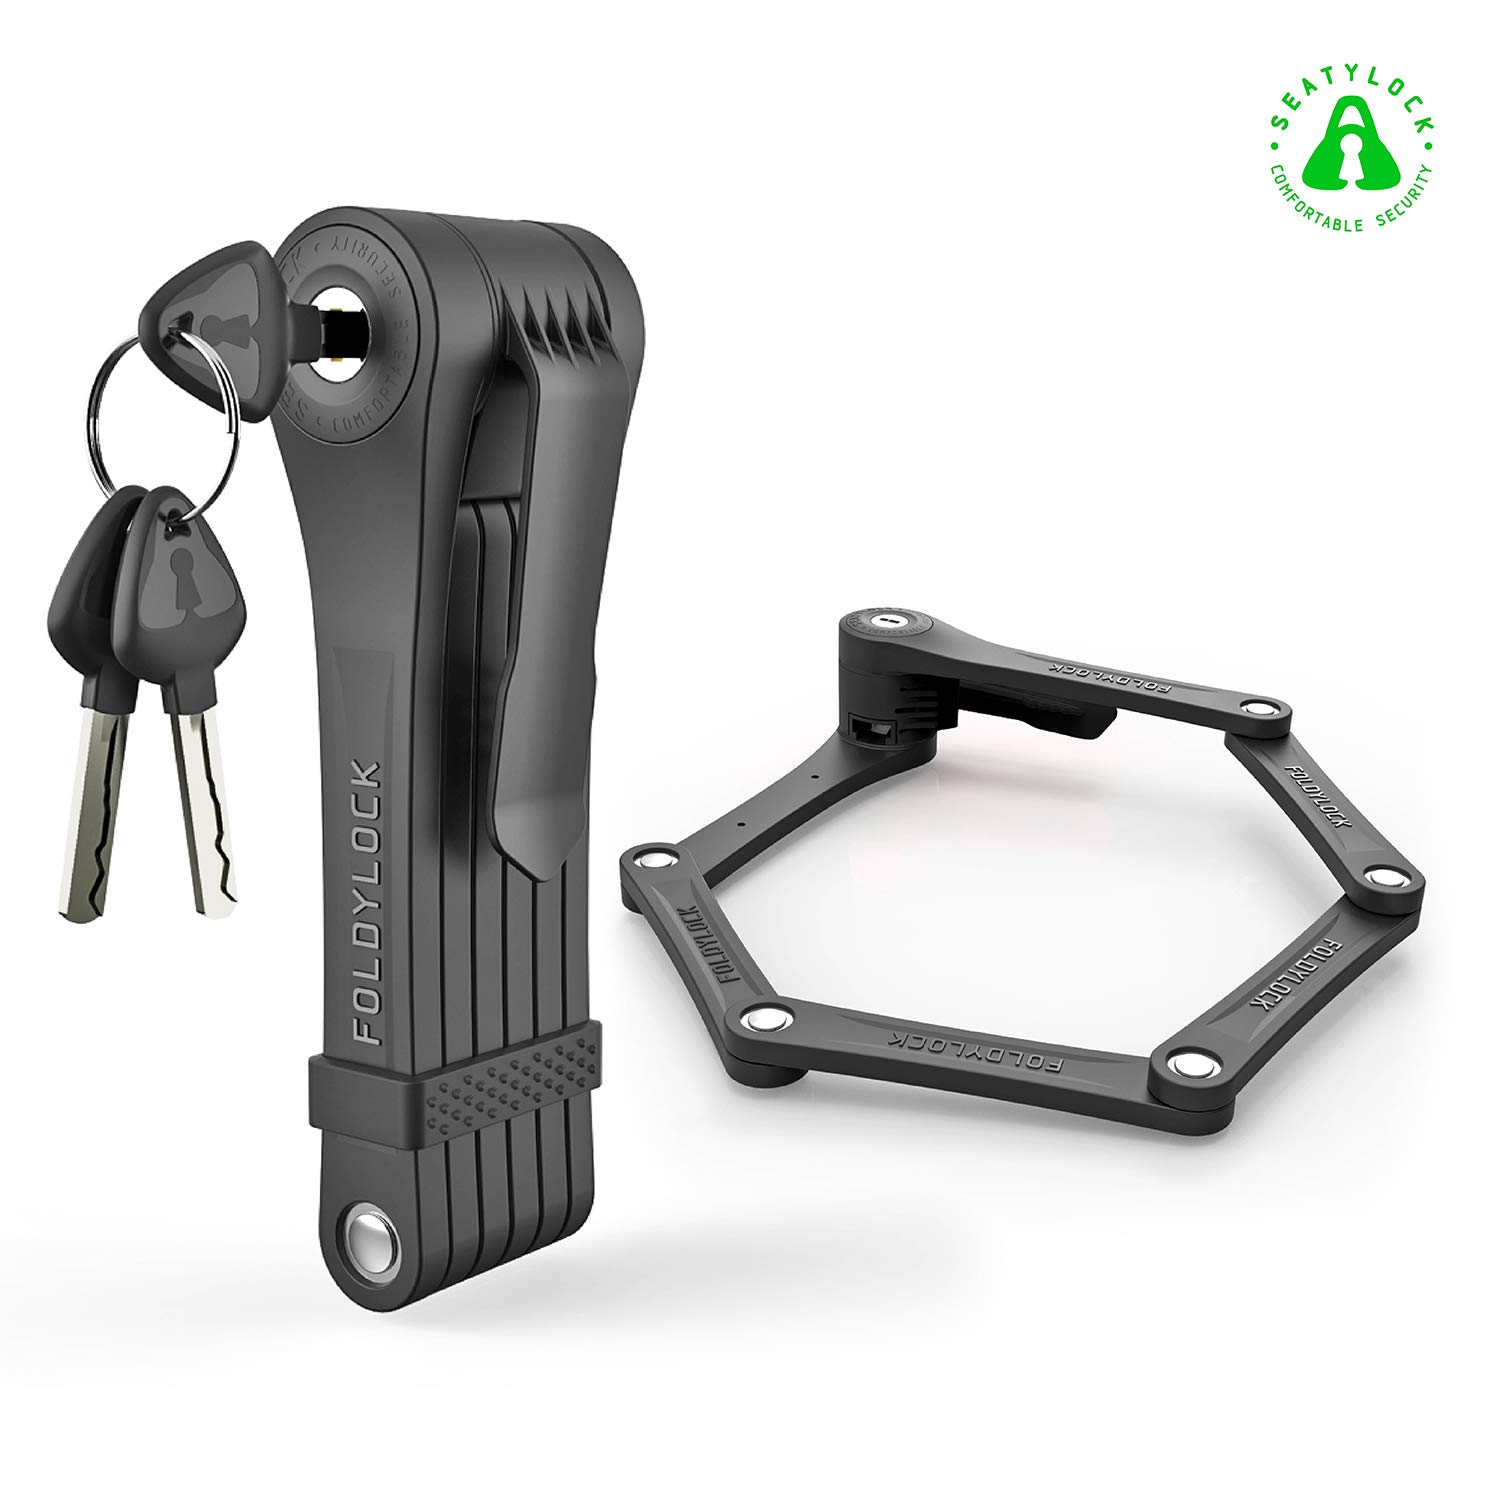 Foldylock Clipster Folding Bike Lock Wearable Compact Bicycle Lock Heavy Duty Fold Bike Lock Anti Pick Bike Folding Lock with Key Set Weight 2.2lb